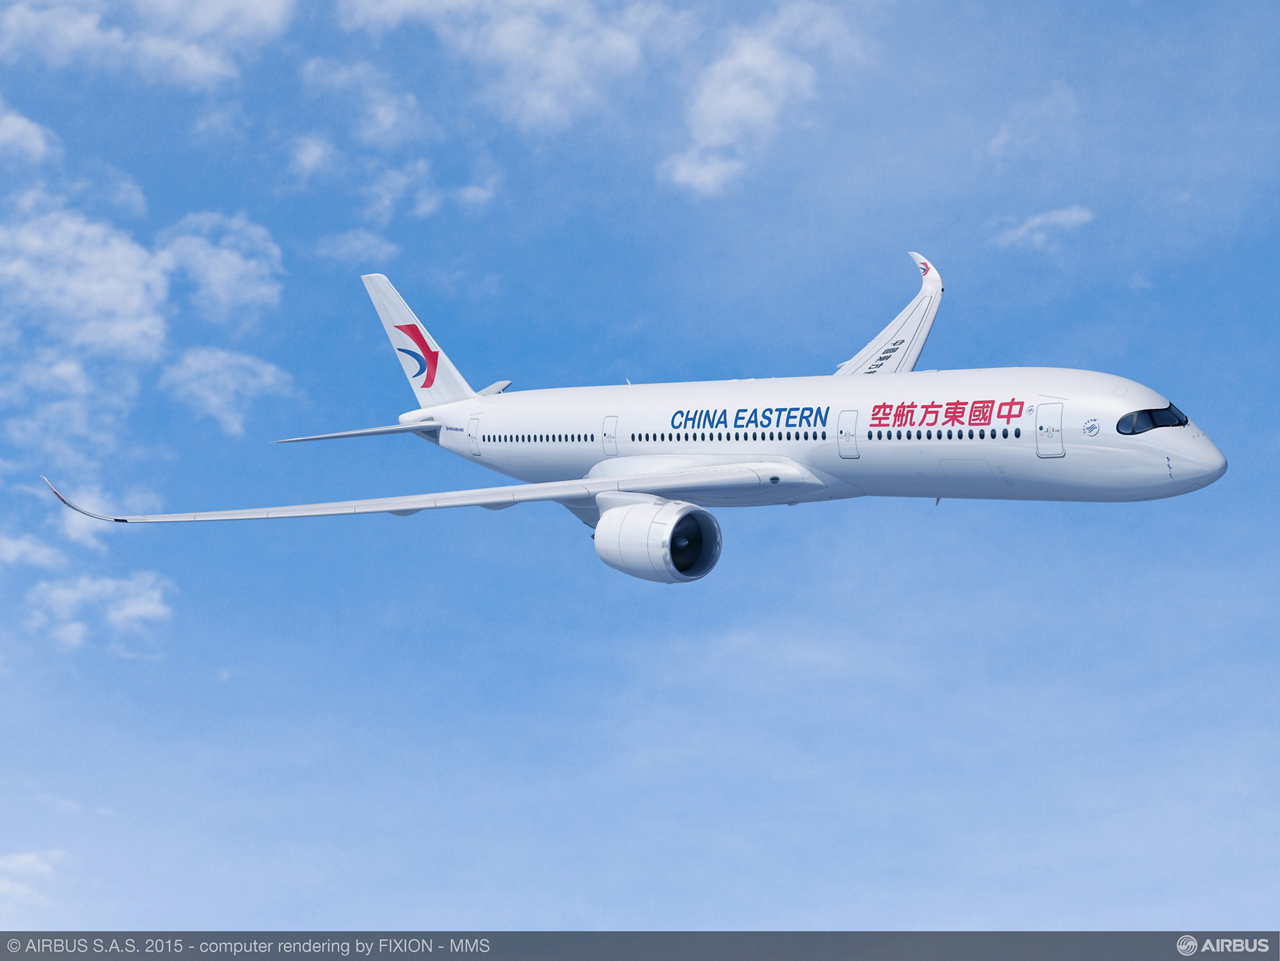 China Eastern Airlines became a new customer for Airbus' A350 XWB with its purchase agreement signed for 20 A350-900 versions